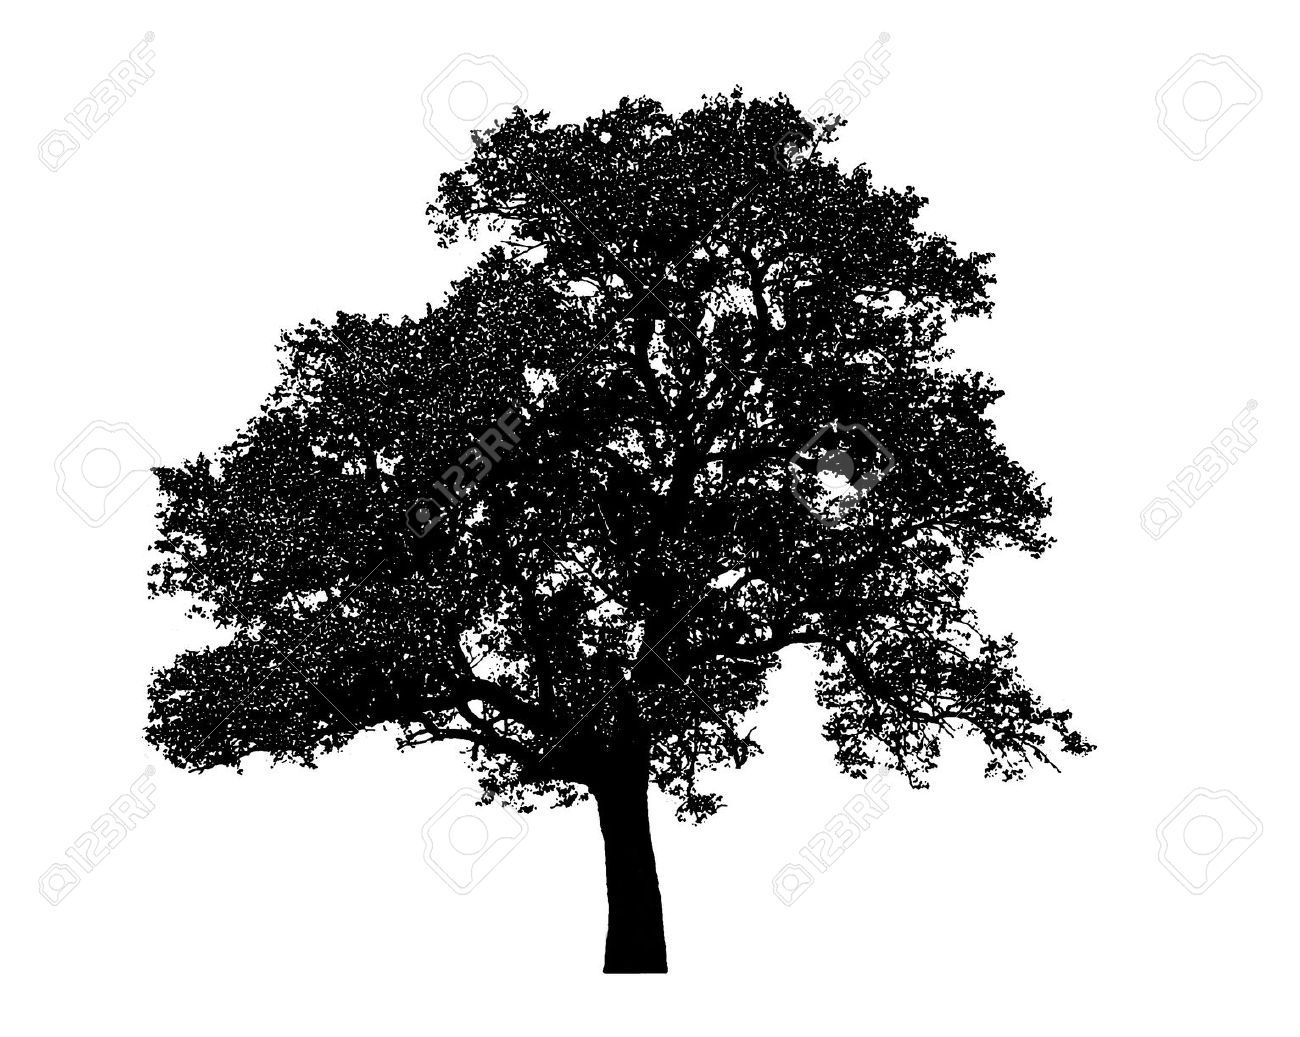 lonely black tree graphic isolated on white background stock photo trees pinterest. Black Bedroom Furniture Sets. Home Design Ideas